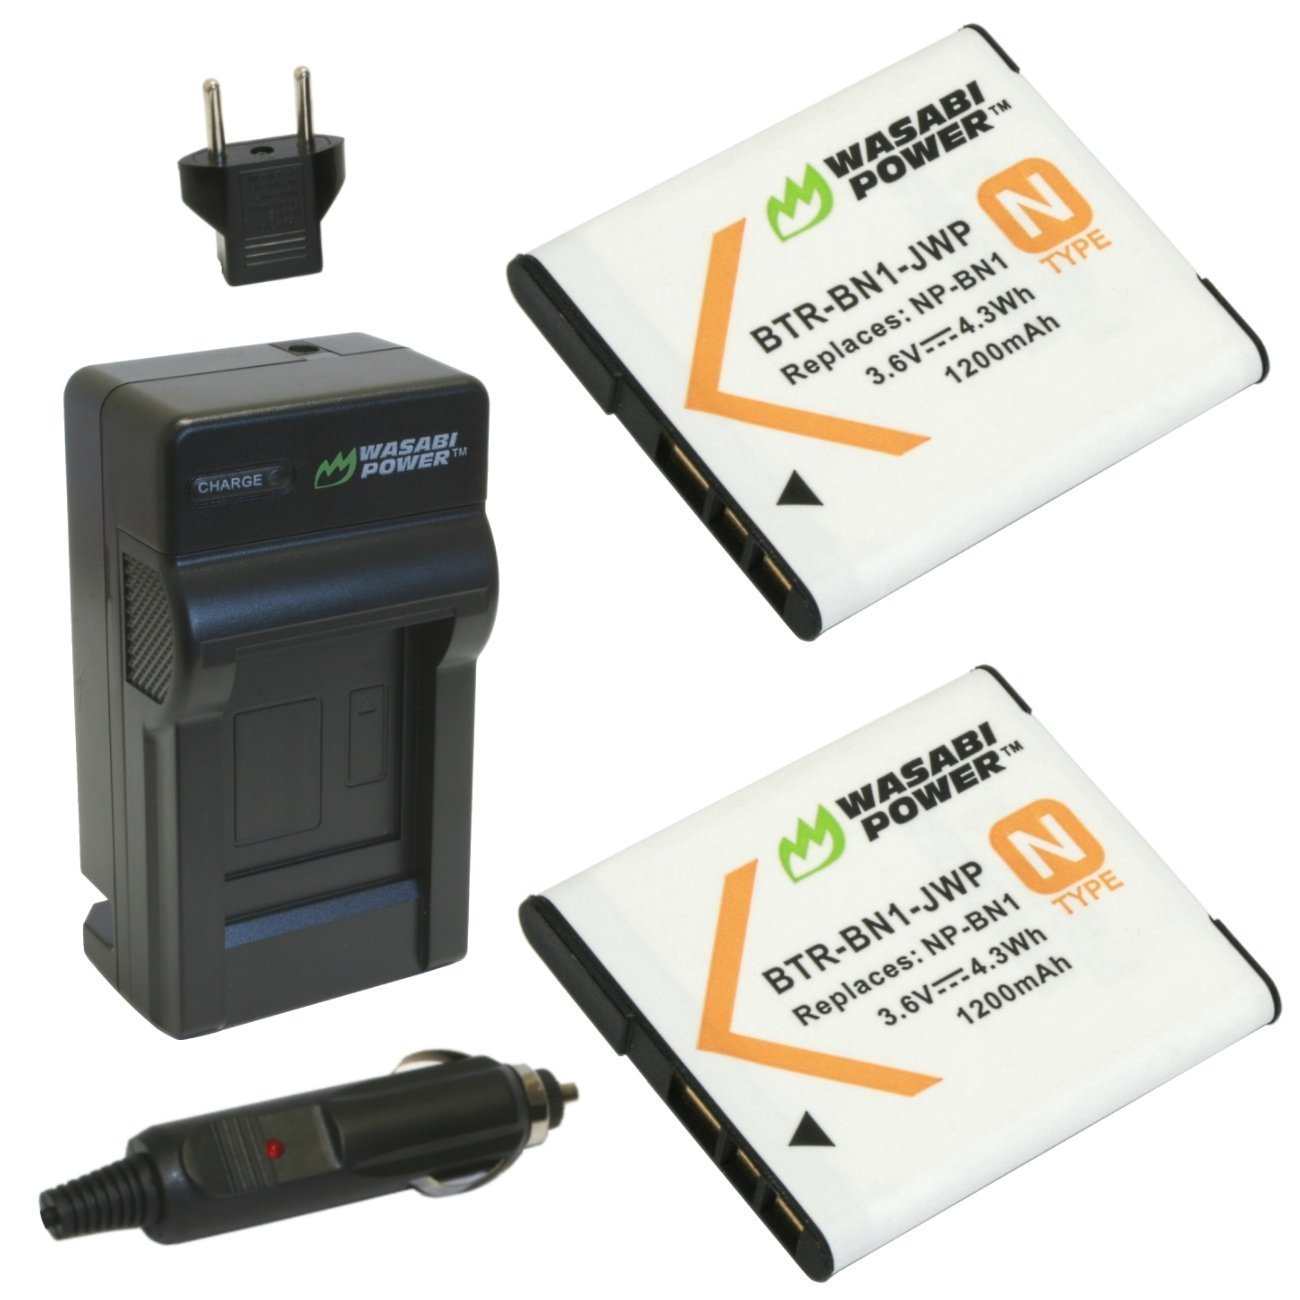 Wasabi Power Battery (2 Pack) And Charger For Sony Np Bn1 And Sony Cyber Shot Dsc Qx10, Dsc Qx100, Dsc T99, Dsc T110, Dsc Tf1, Dsc Tx5, Dsc Tx7, Dsc Tx9, Dsc Tx10, Dsc Tx20, Dsc Tx30, Dsc Tx55, Dsc Tx66, Dsc Tx100 V, Dsc Tx200 V, Dsc W310, Dsc W320, Ds..... by Wasabi Power